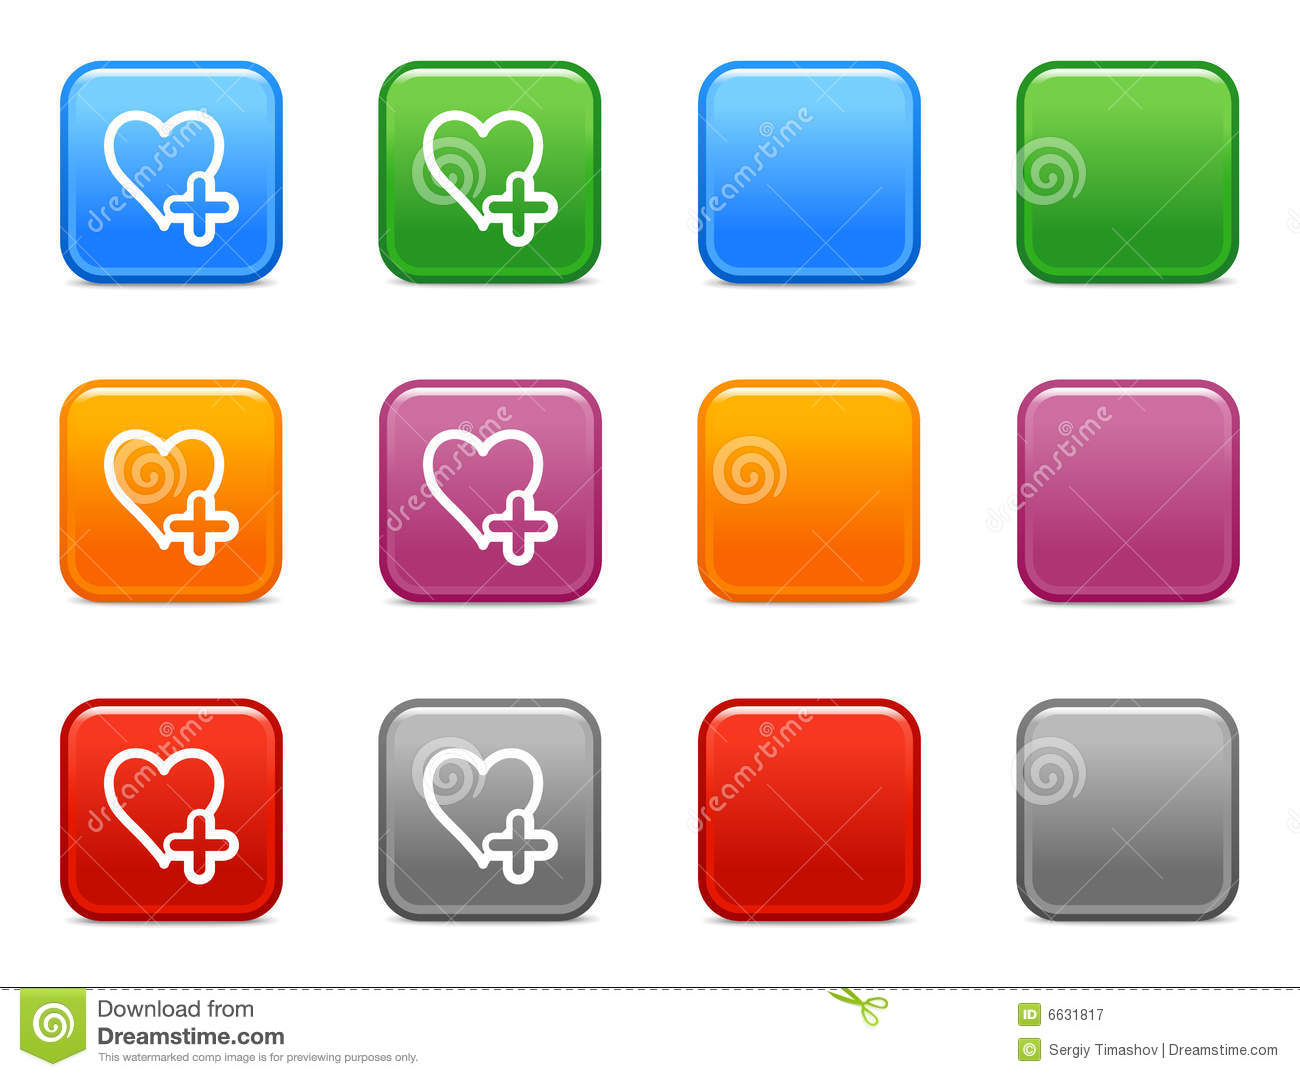 Add To Favorites buttons add to favorites icon stock vector - illustration of